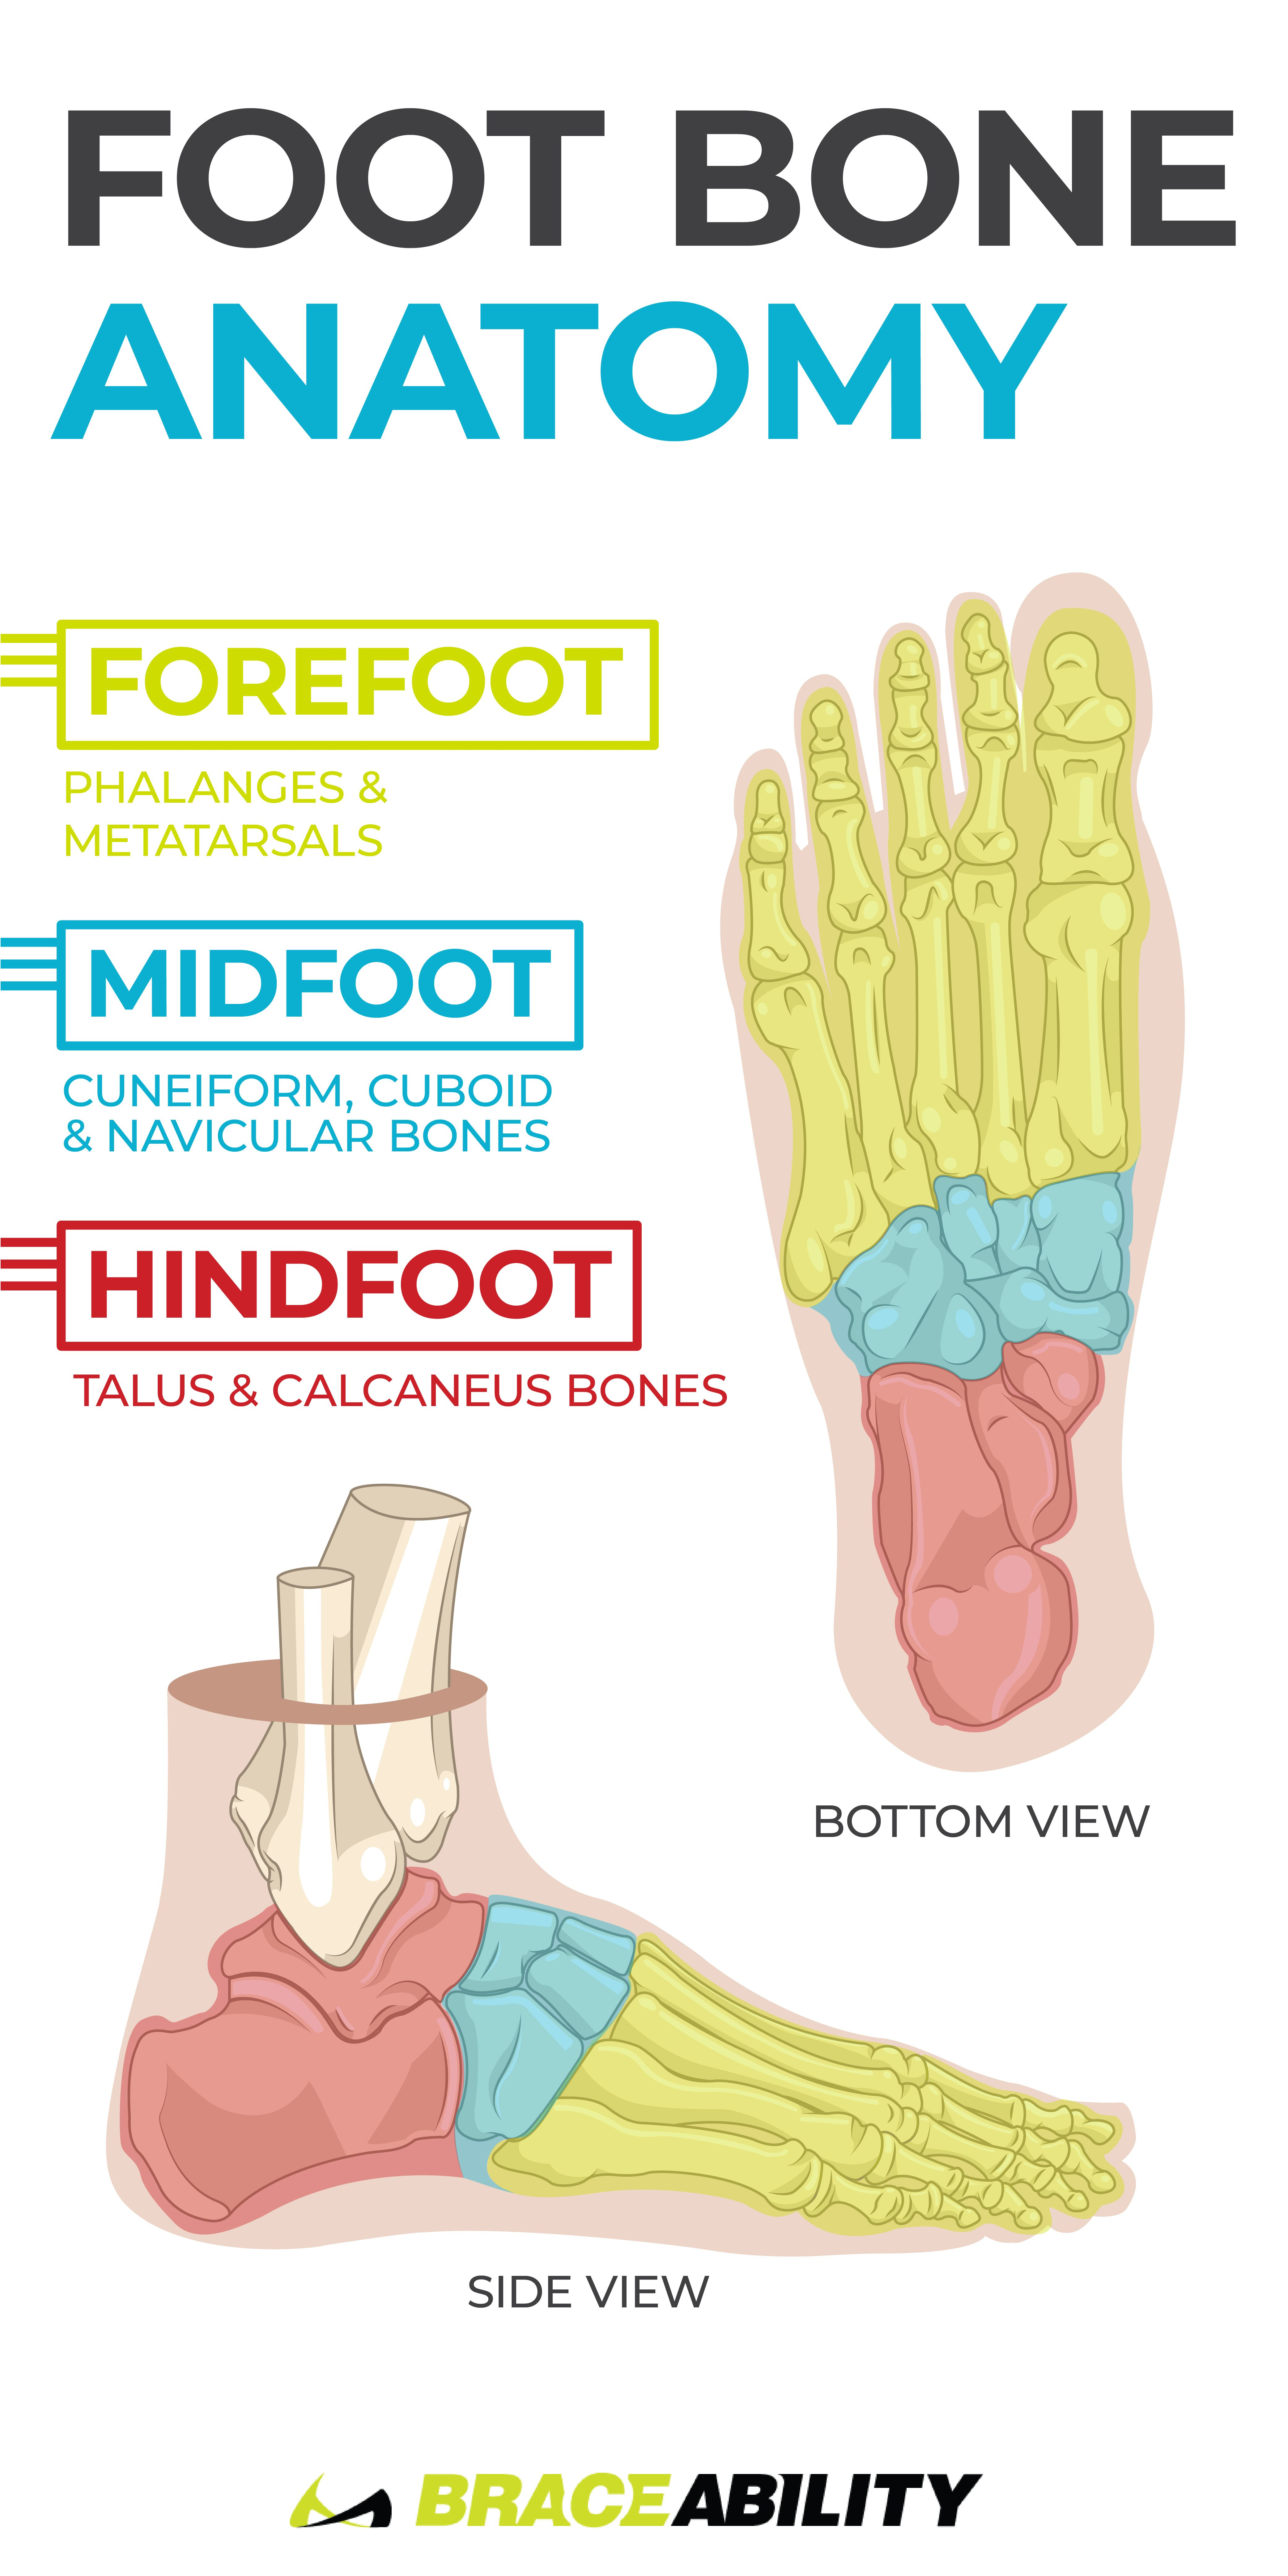 Pin On Foot Toe Injuries Fractures Sprains Arch Pain Plantar Fasciitis Nerve Injuries And Drop Foot